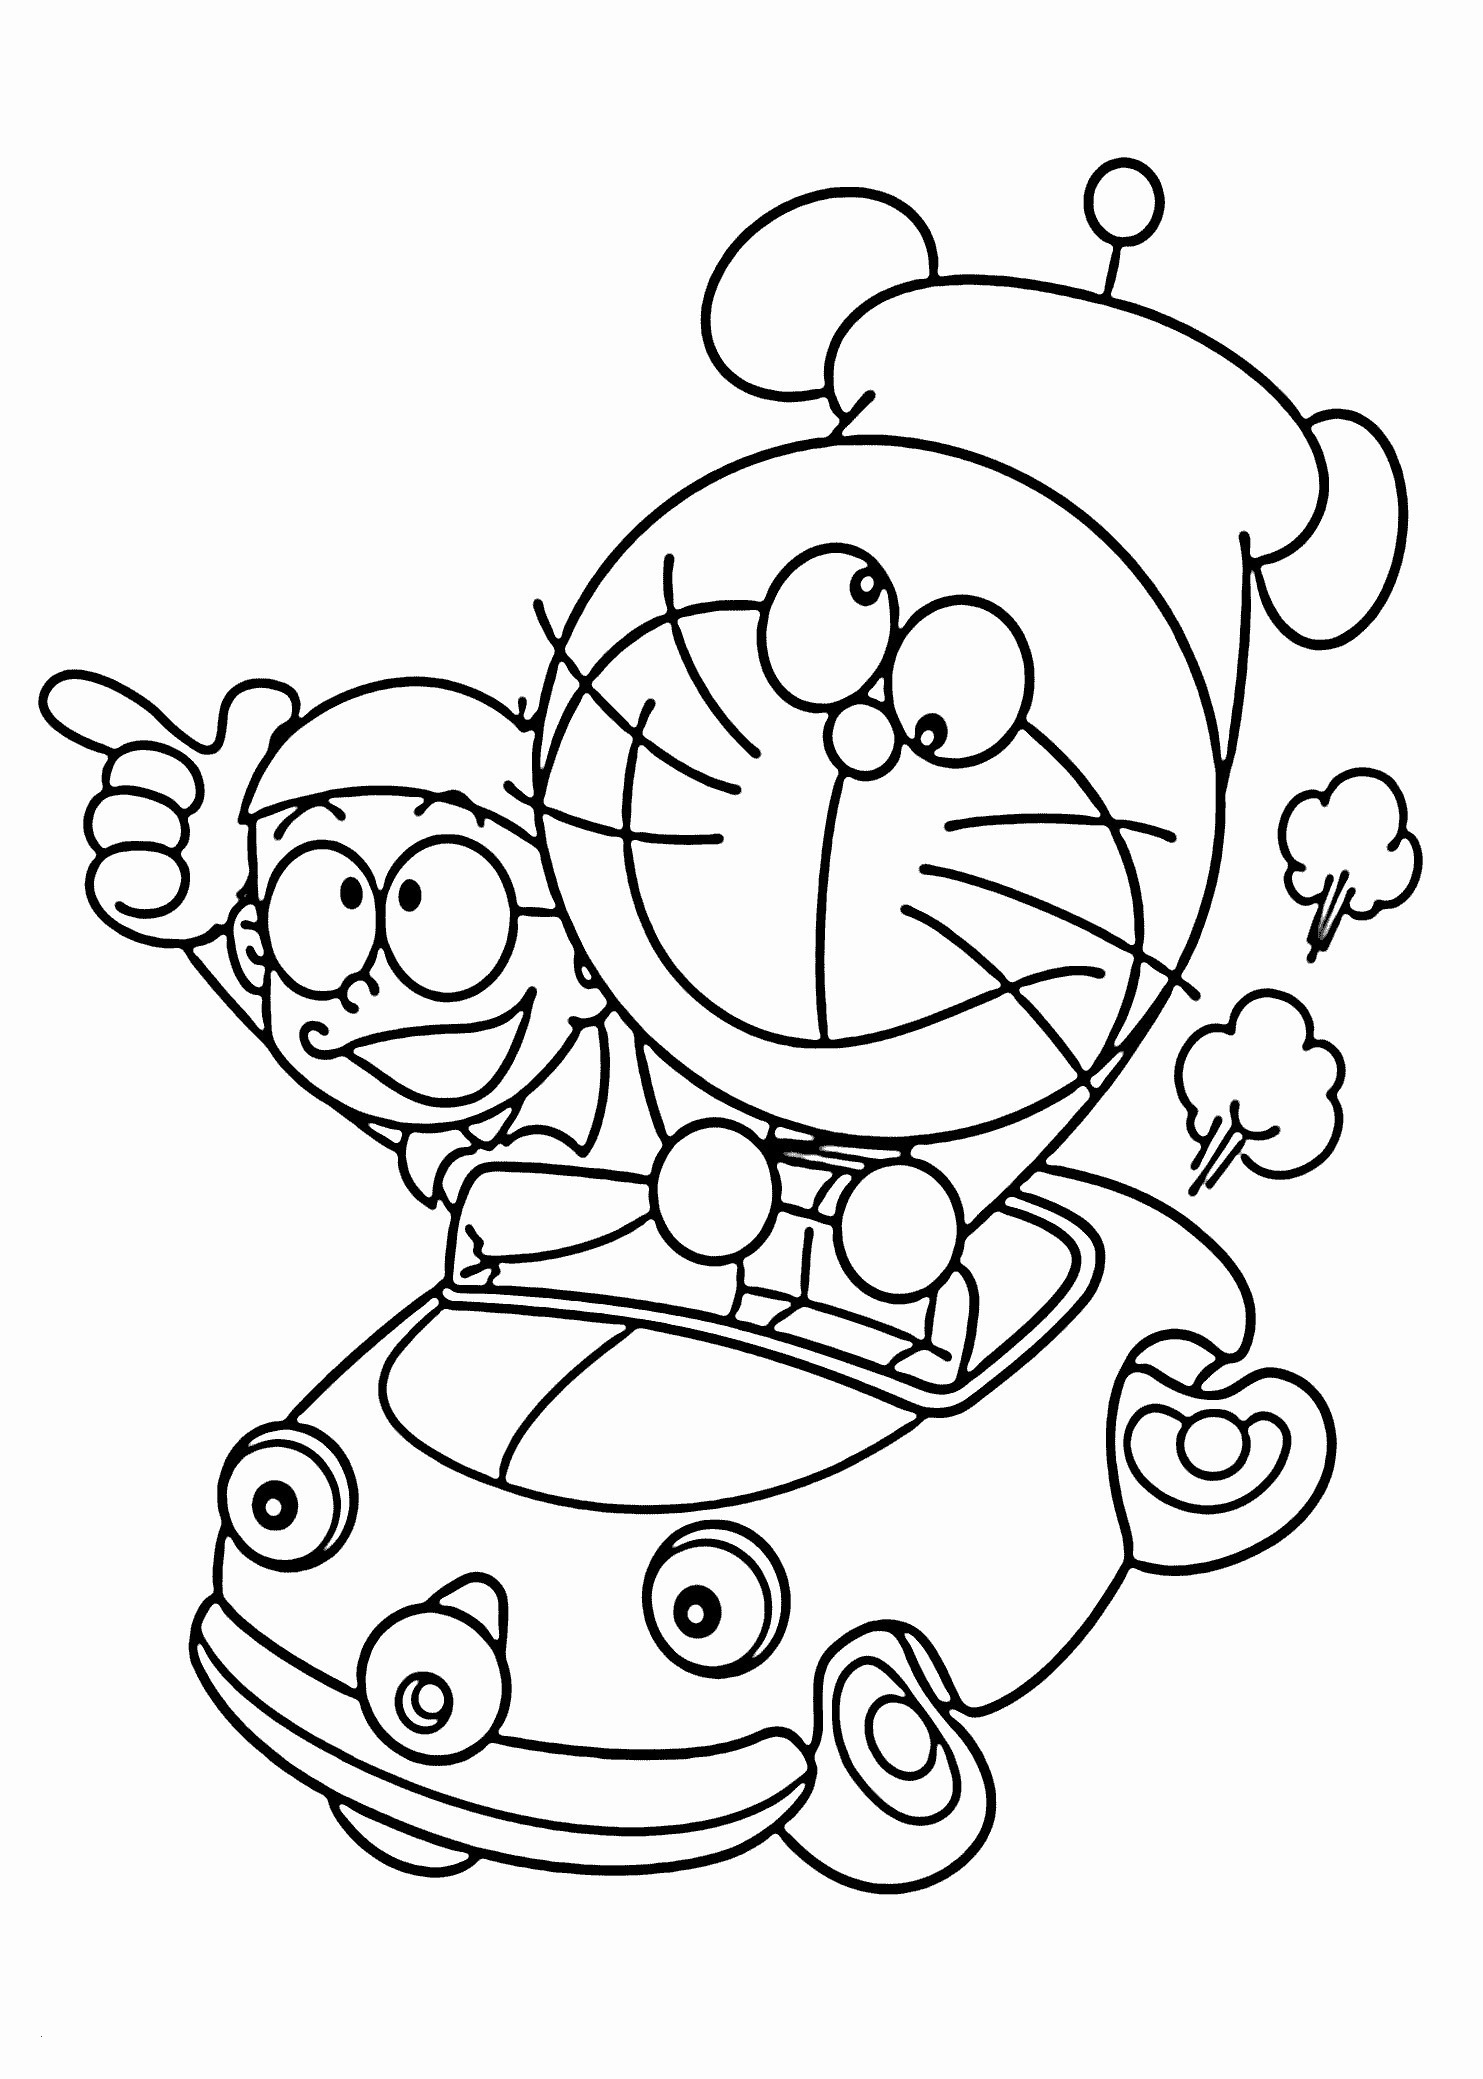 pokemon coloring pages free Download-Grandparents Day Printable Coloring Pages 30 New Printable Coloring Books for Kids Cloud9vegas 16-n